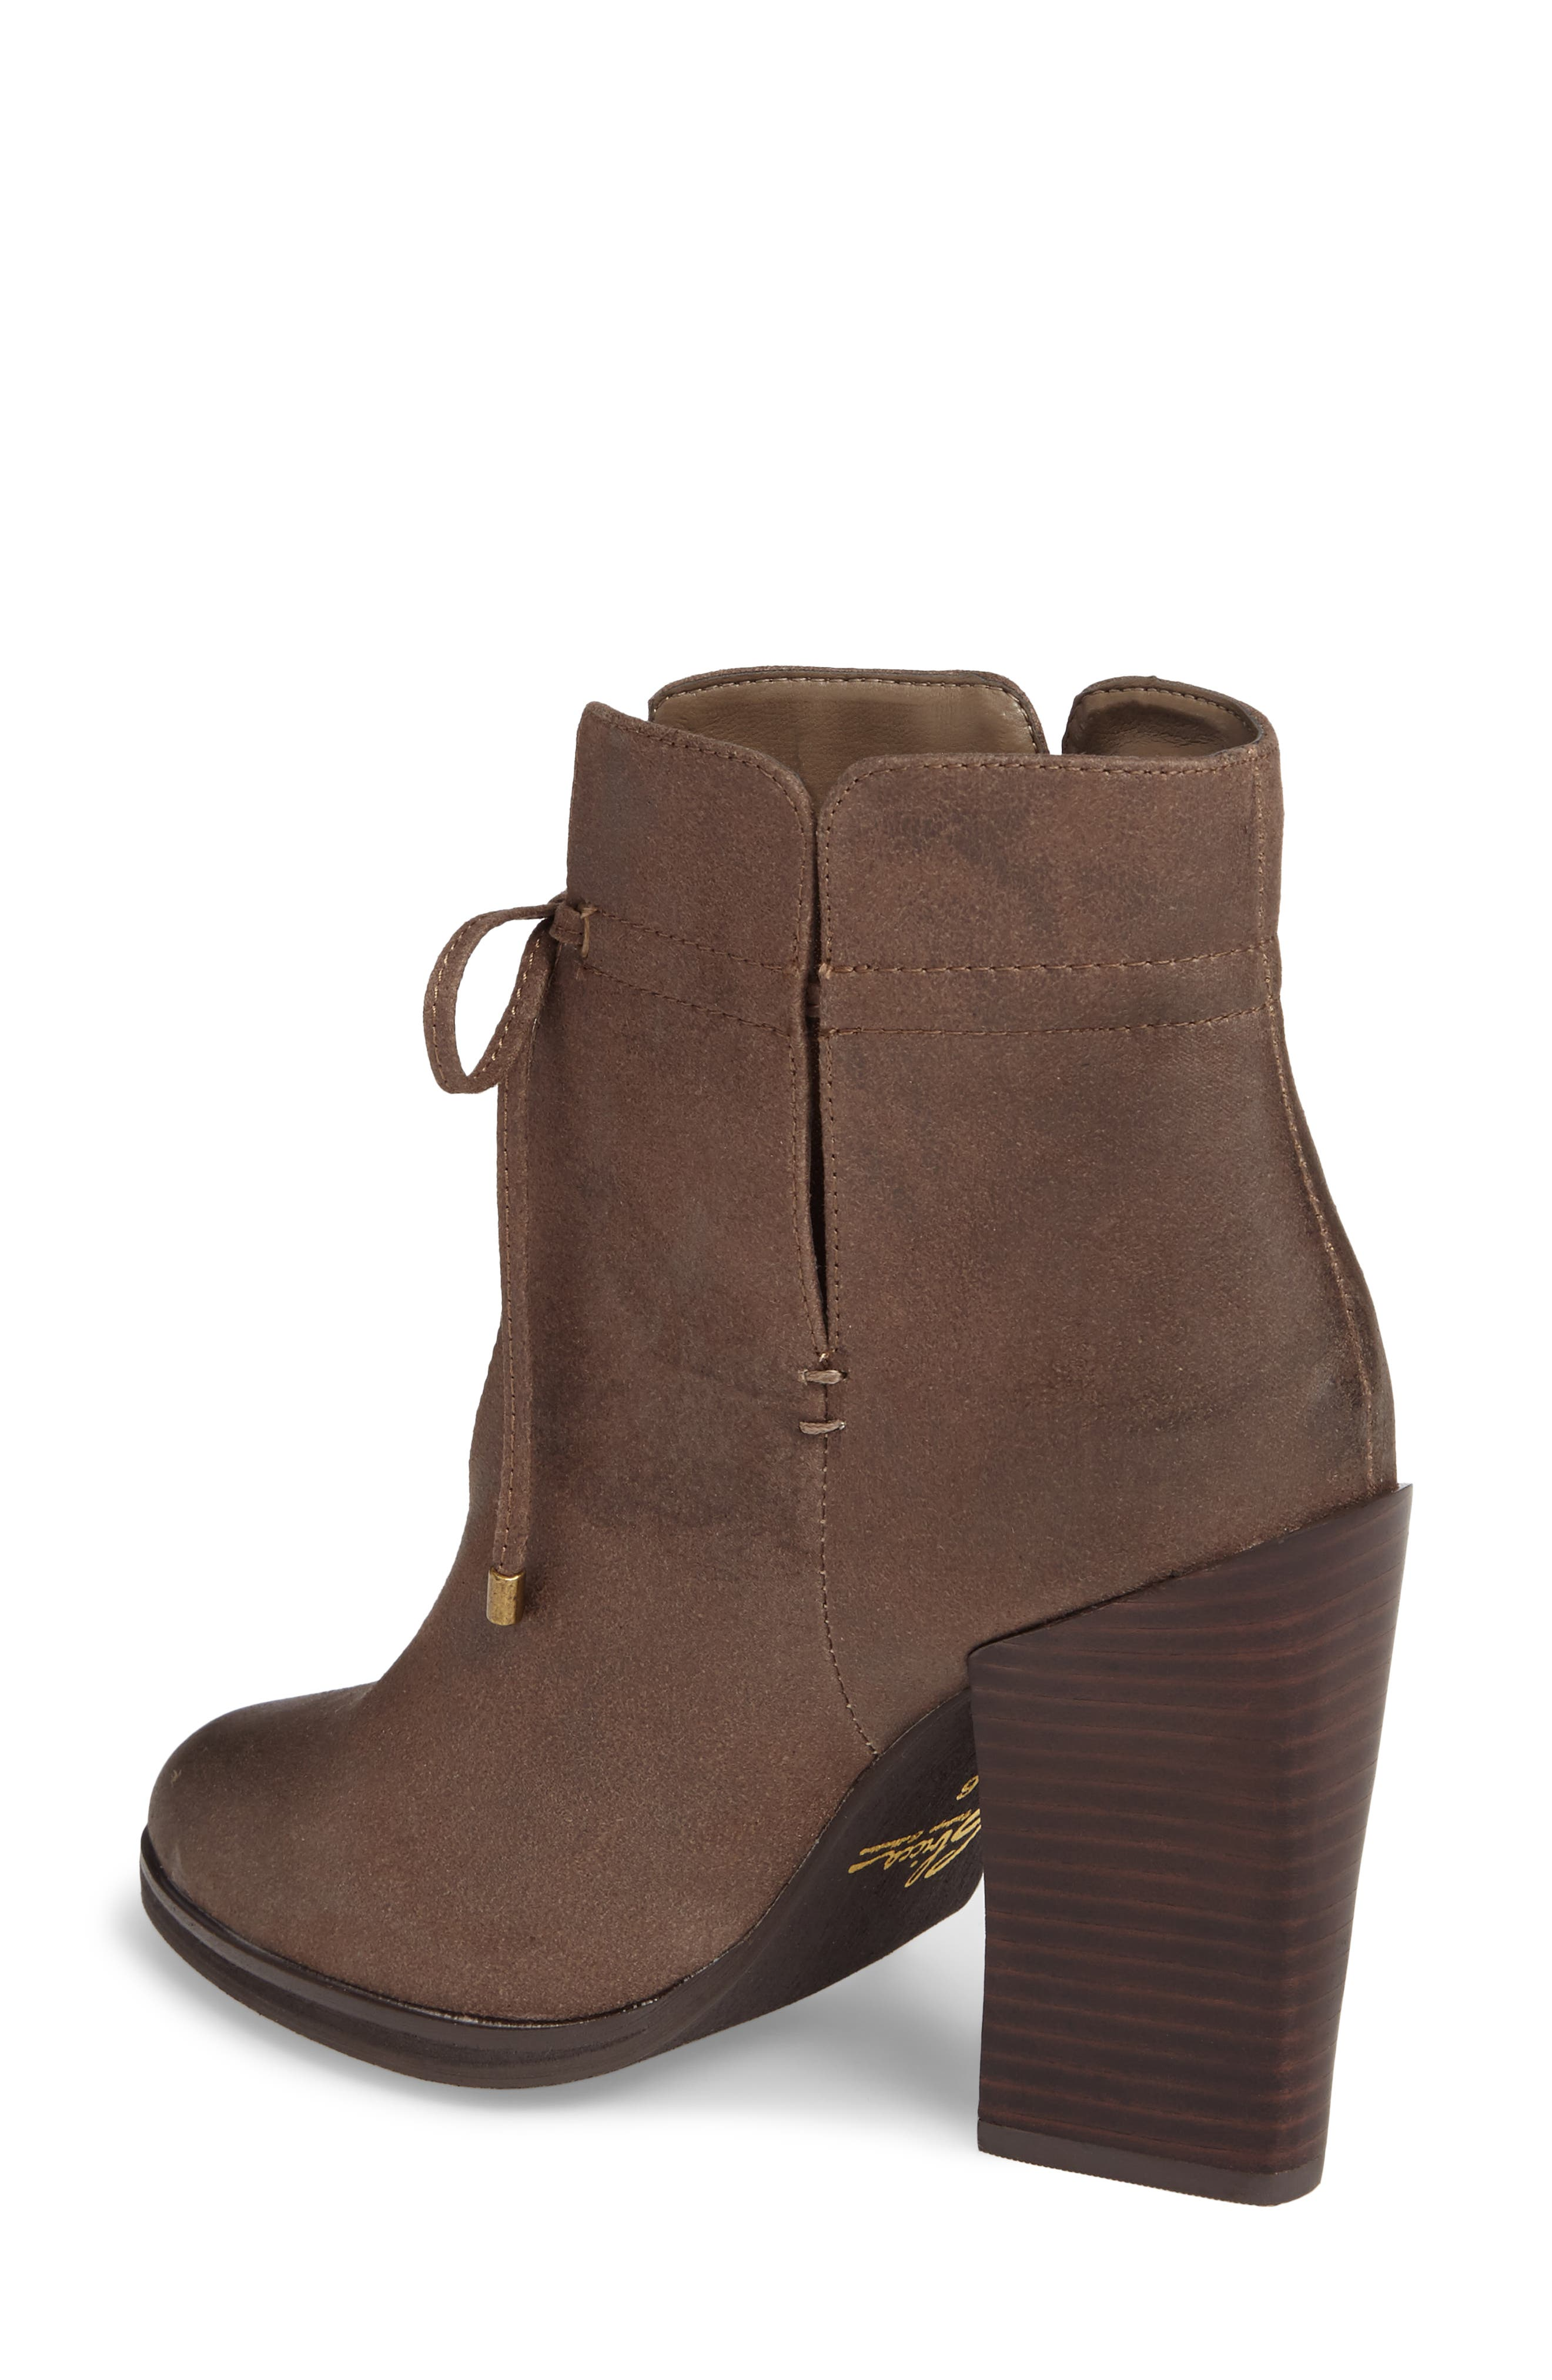 Chick Flick Bootie,                             Alternate thumbnail 2, color,                             Taupe Faux Leather